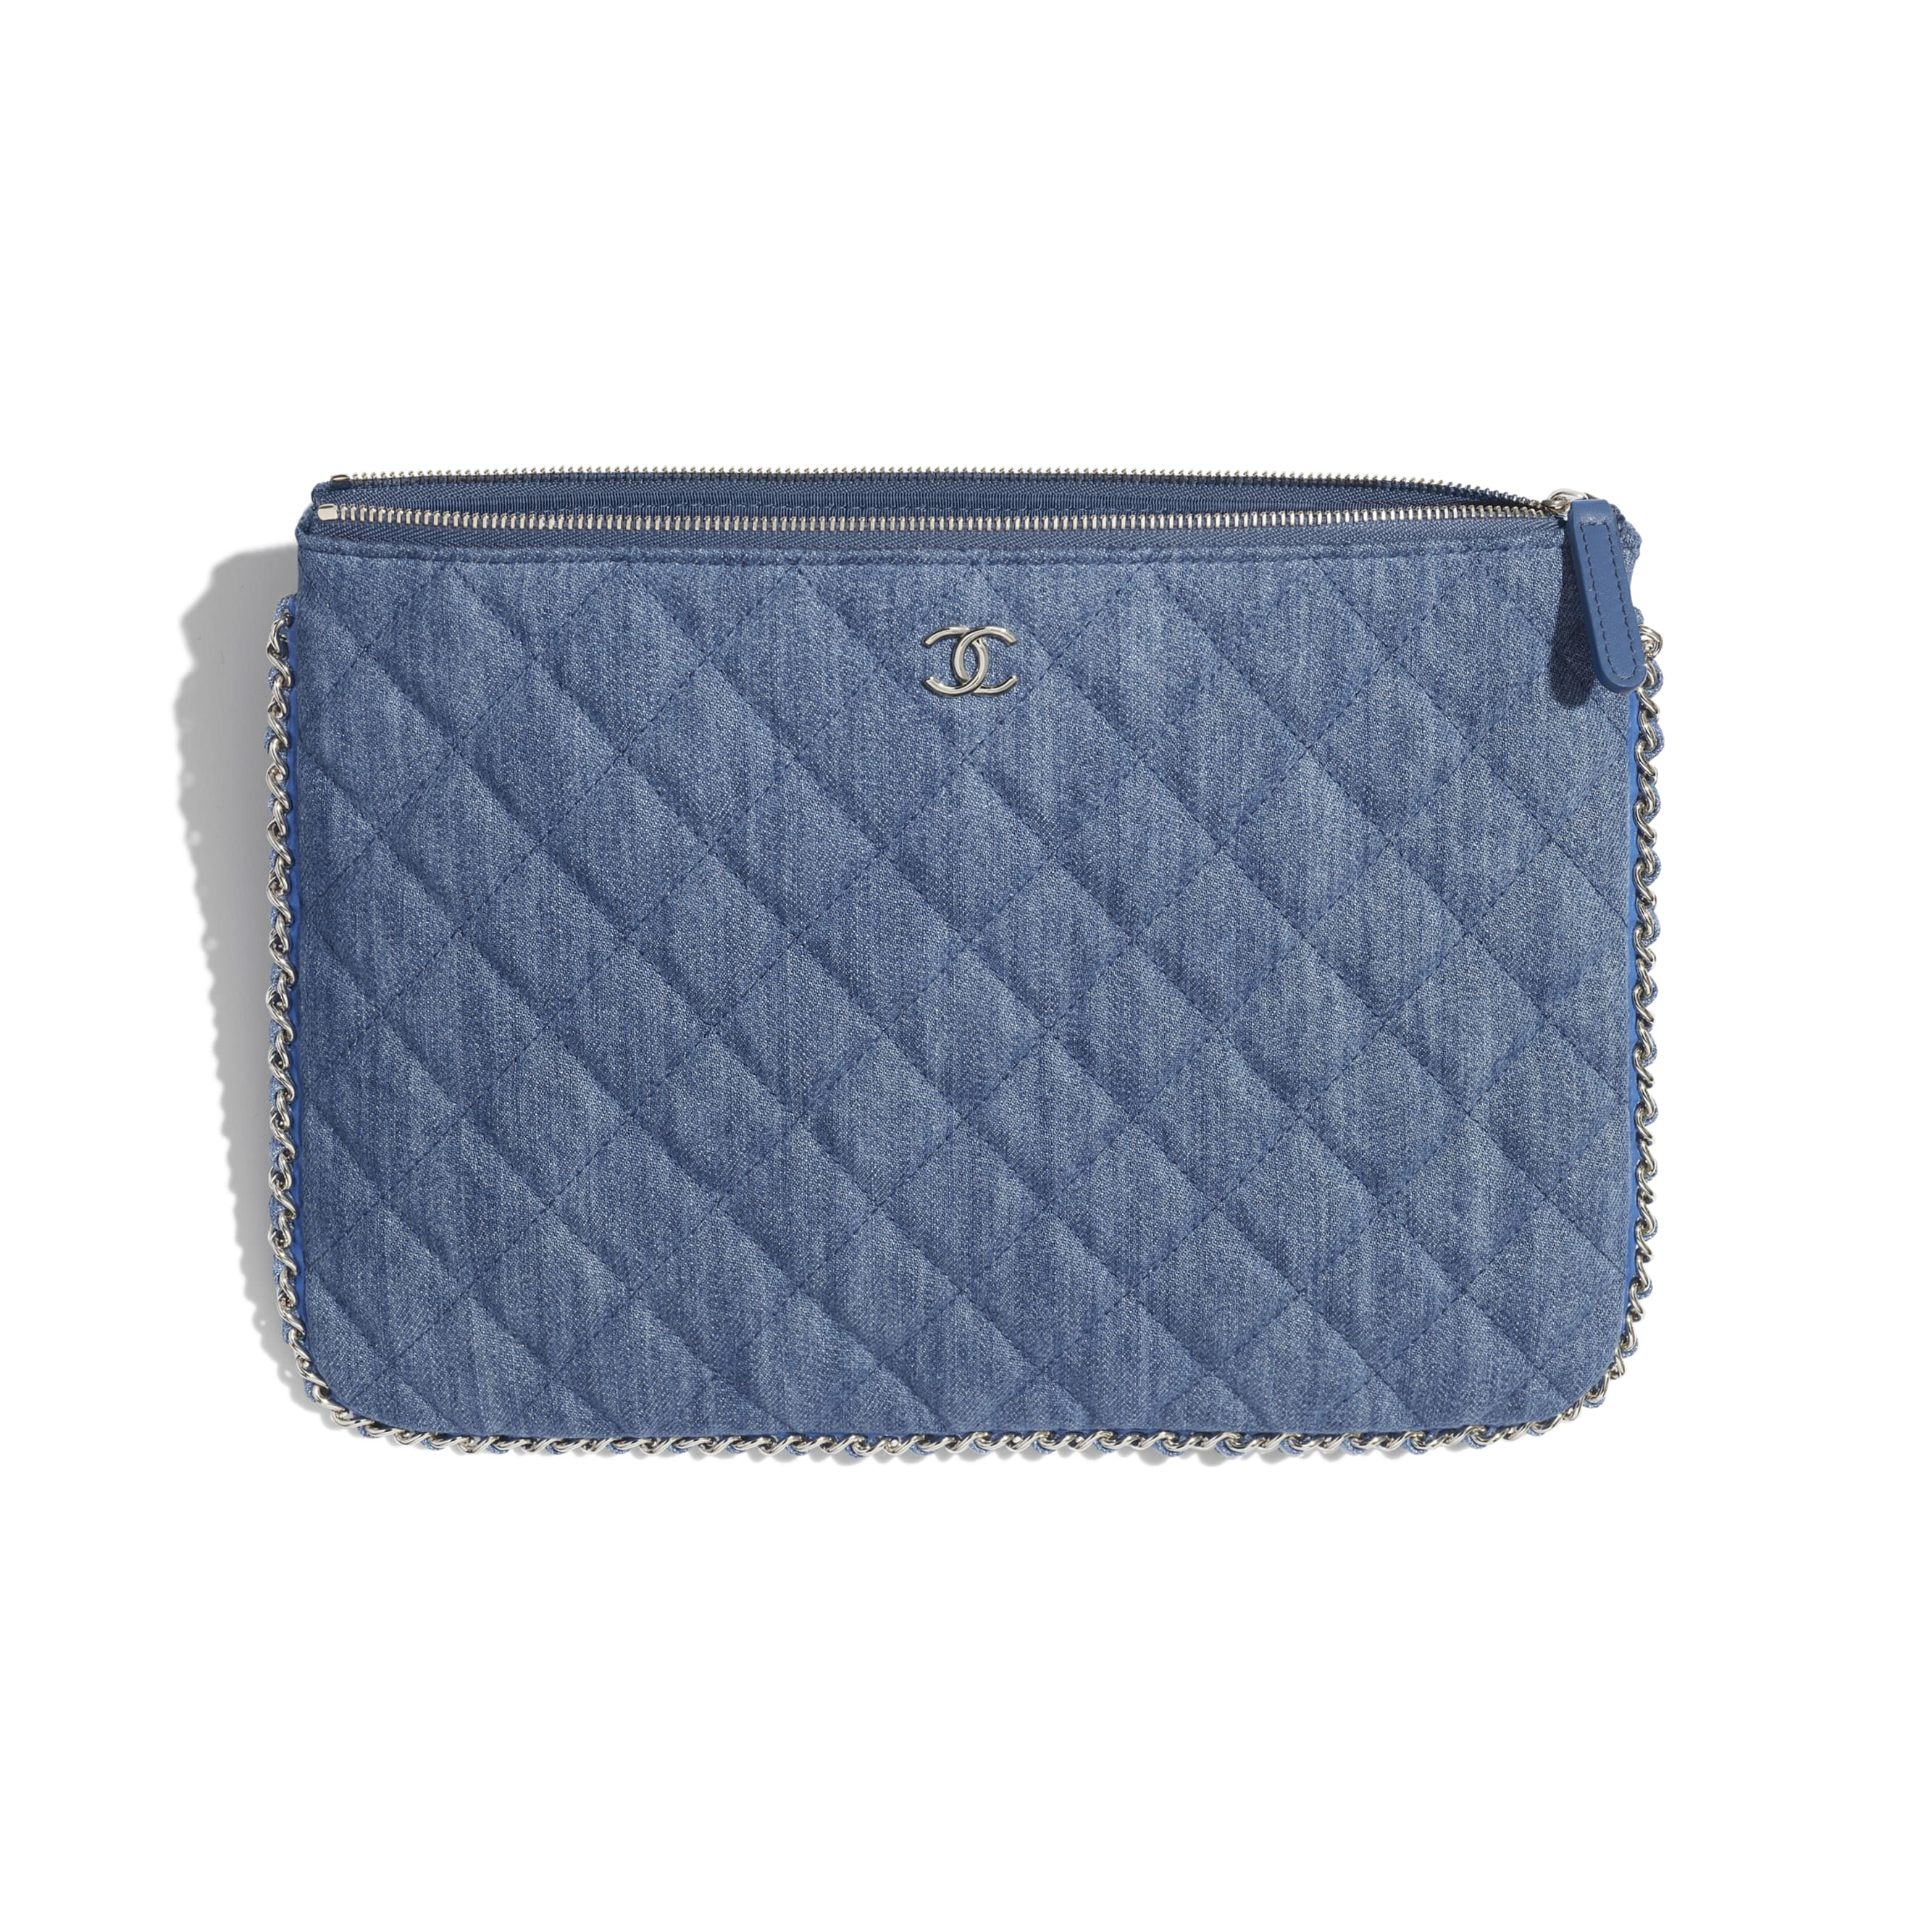 Pouch - Blue - Denim, Chain & Silver-Tone Metal - Other view - see standard sized version